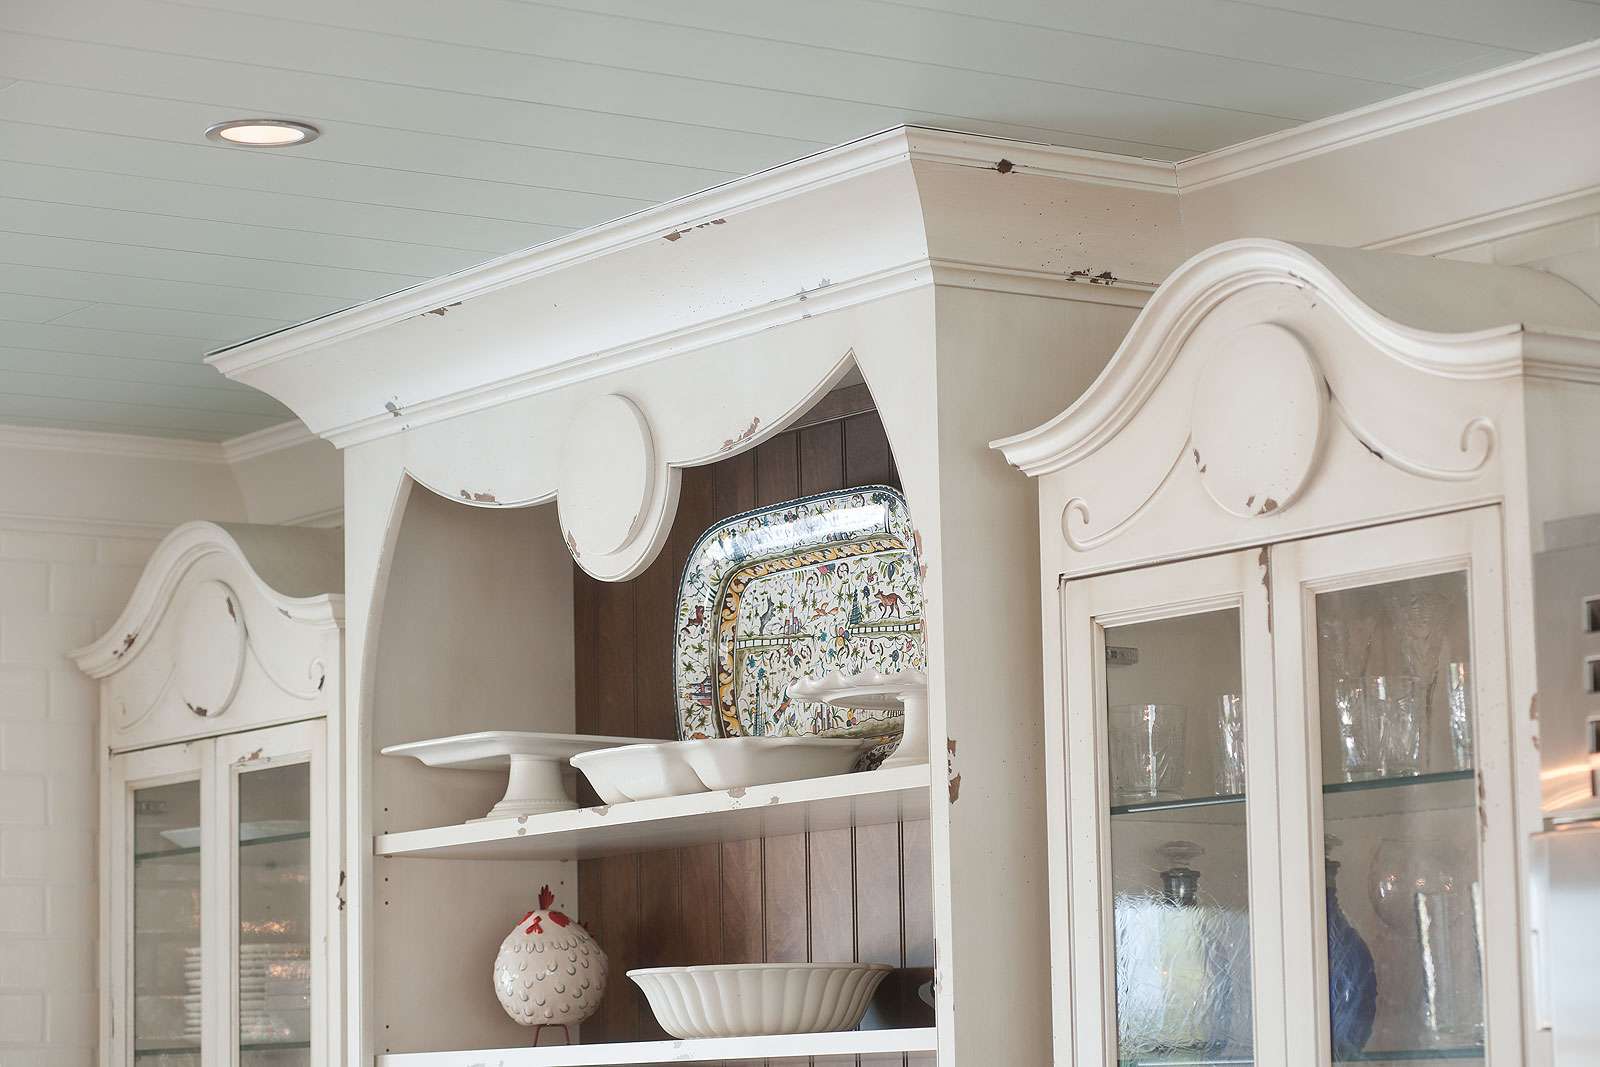 Mullet Cabinet — Whimsical Disney-Inspired Kitchen